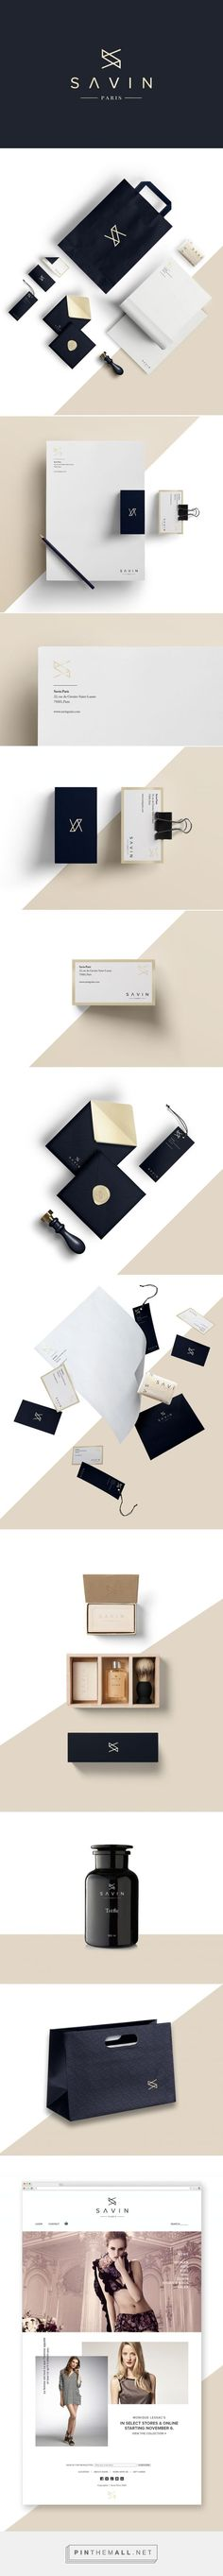 Savin Paris - fashion apparel on Behance - branding stationary corporate identity visual design label business card letterhead bag packaging website enveloppe logo minimalistic graphic design: